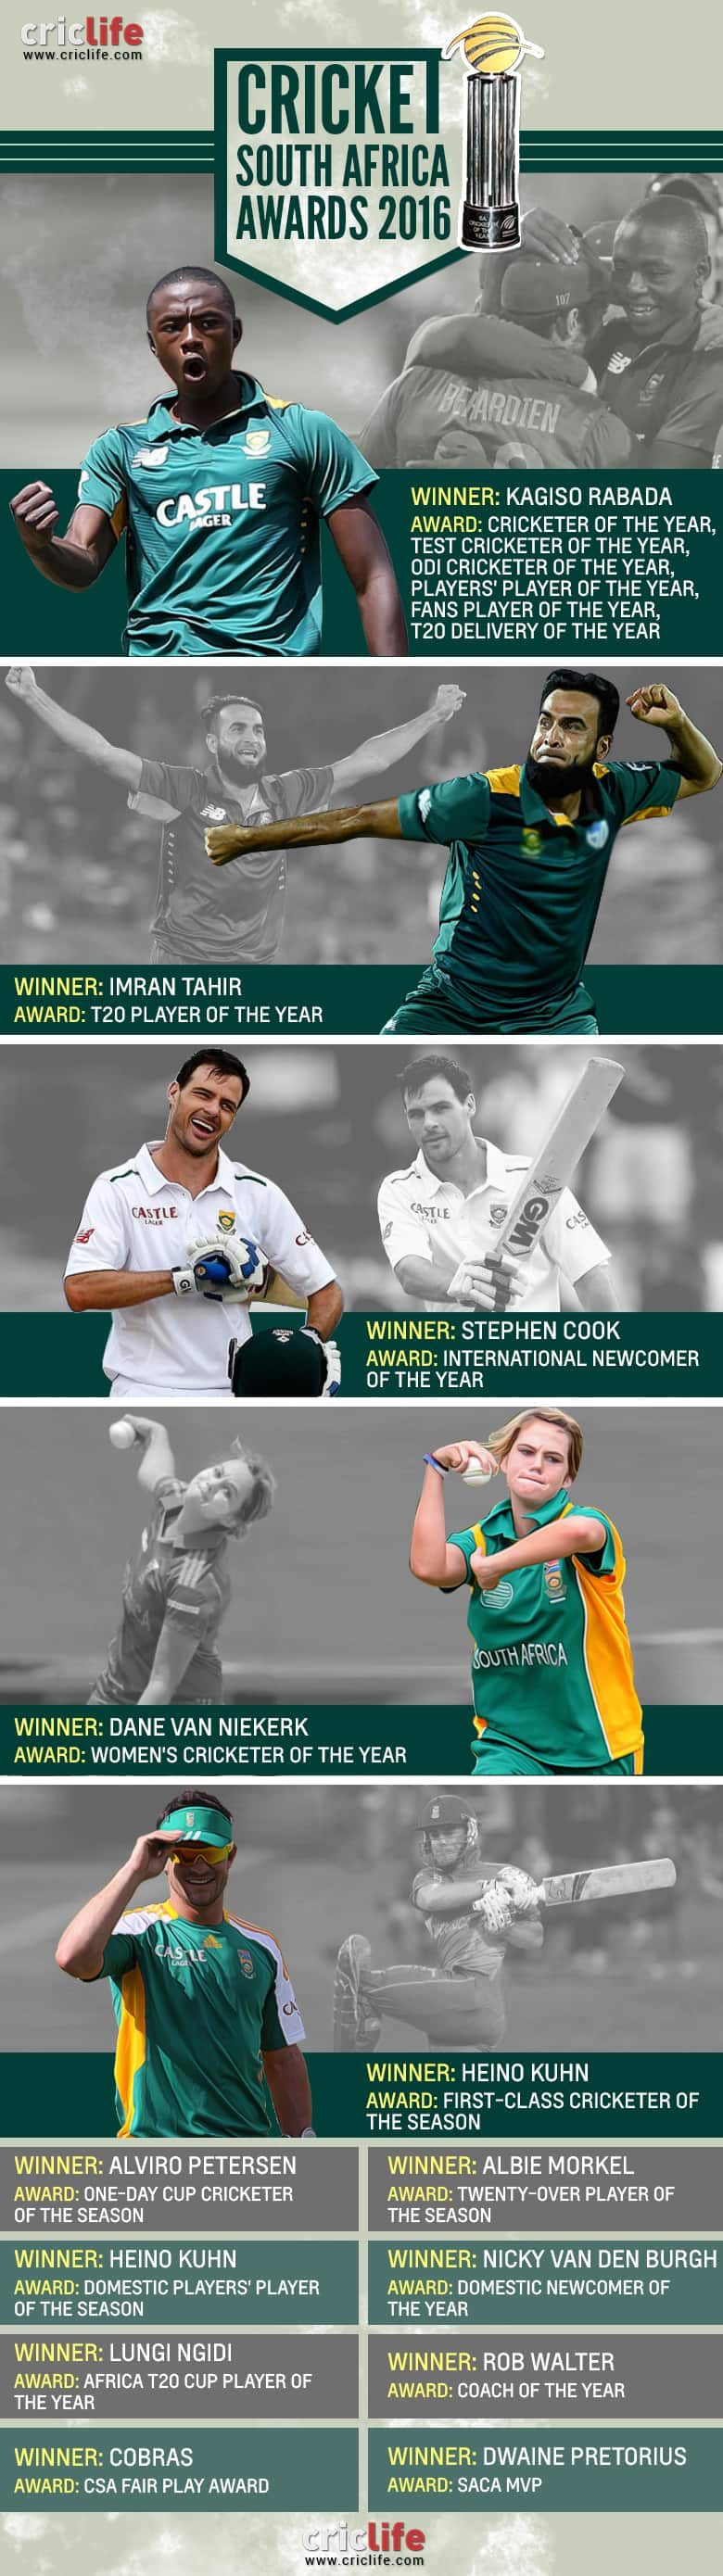 Cricket-South-Africa-Awards-2016